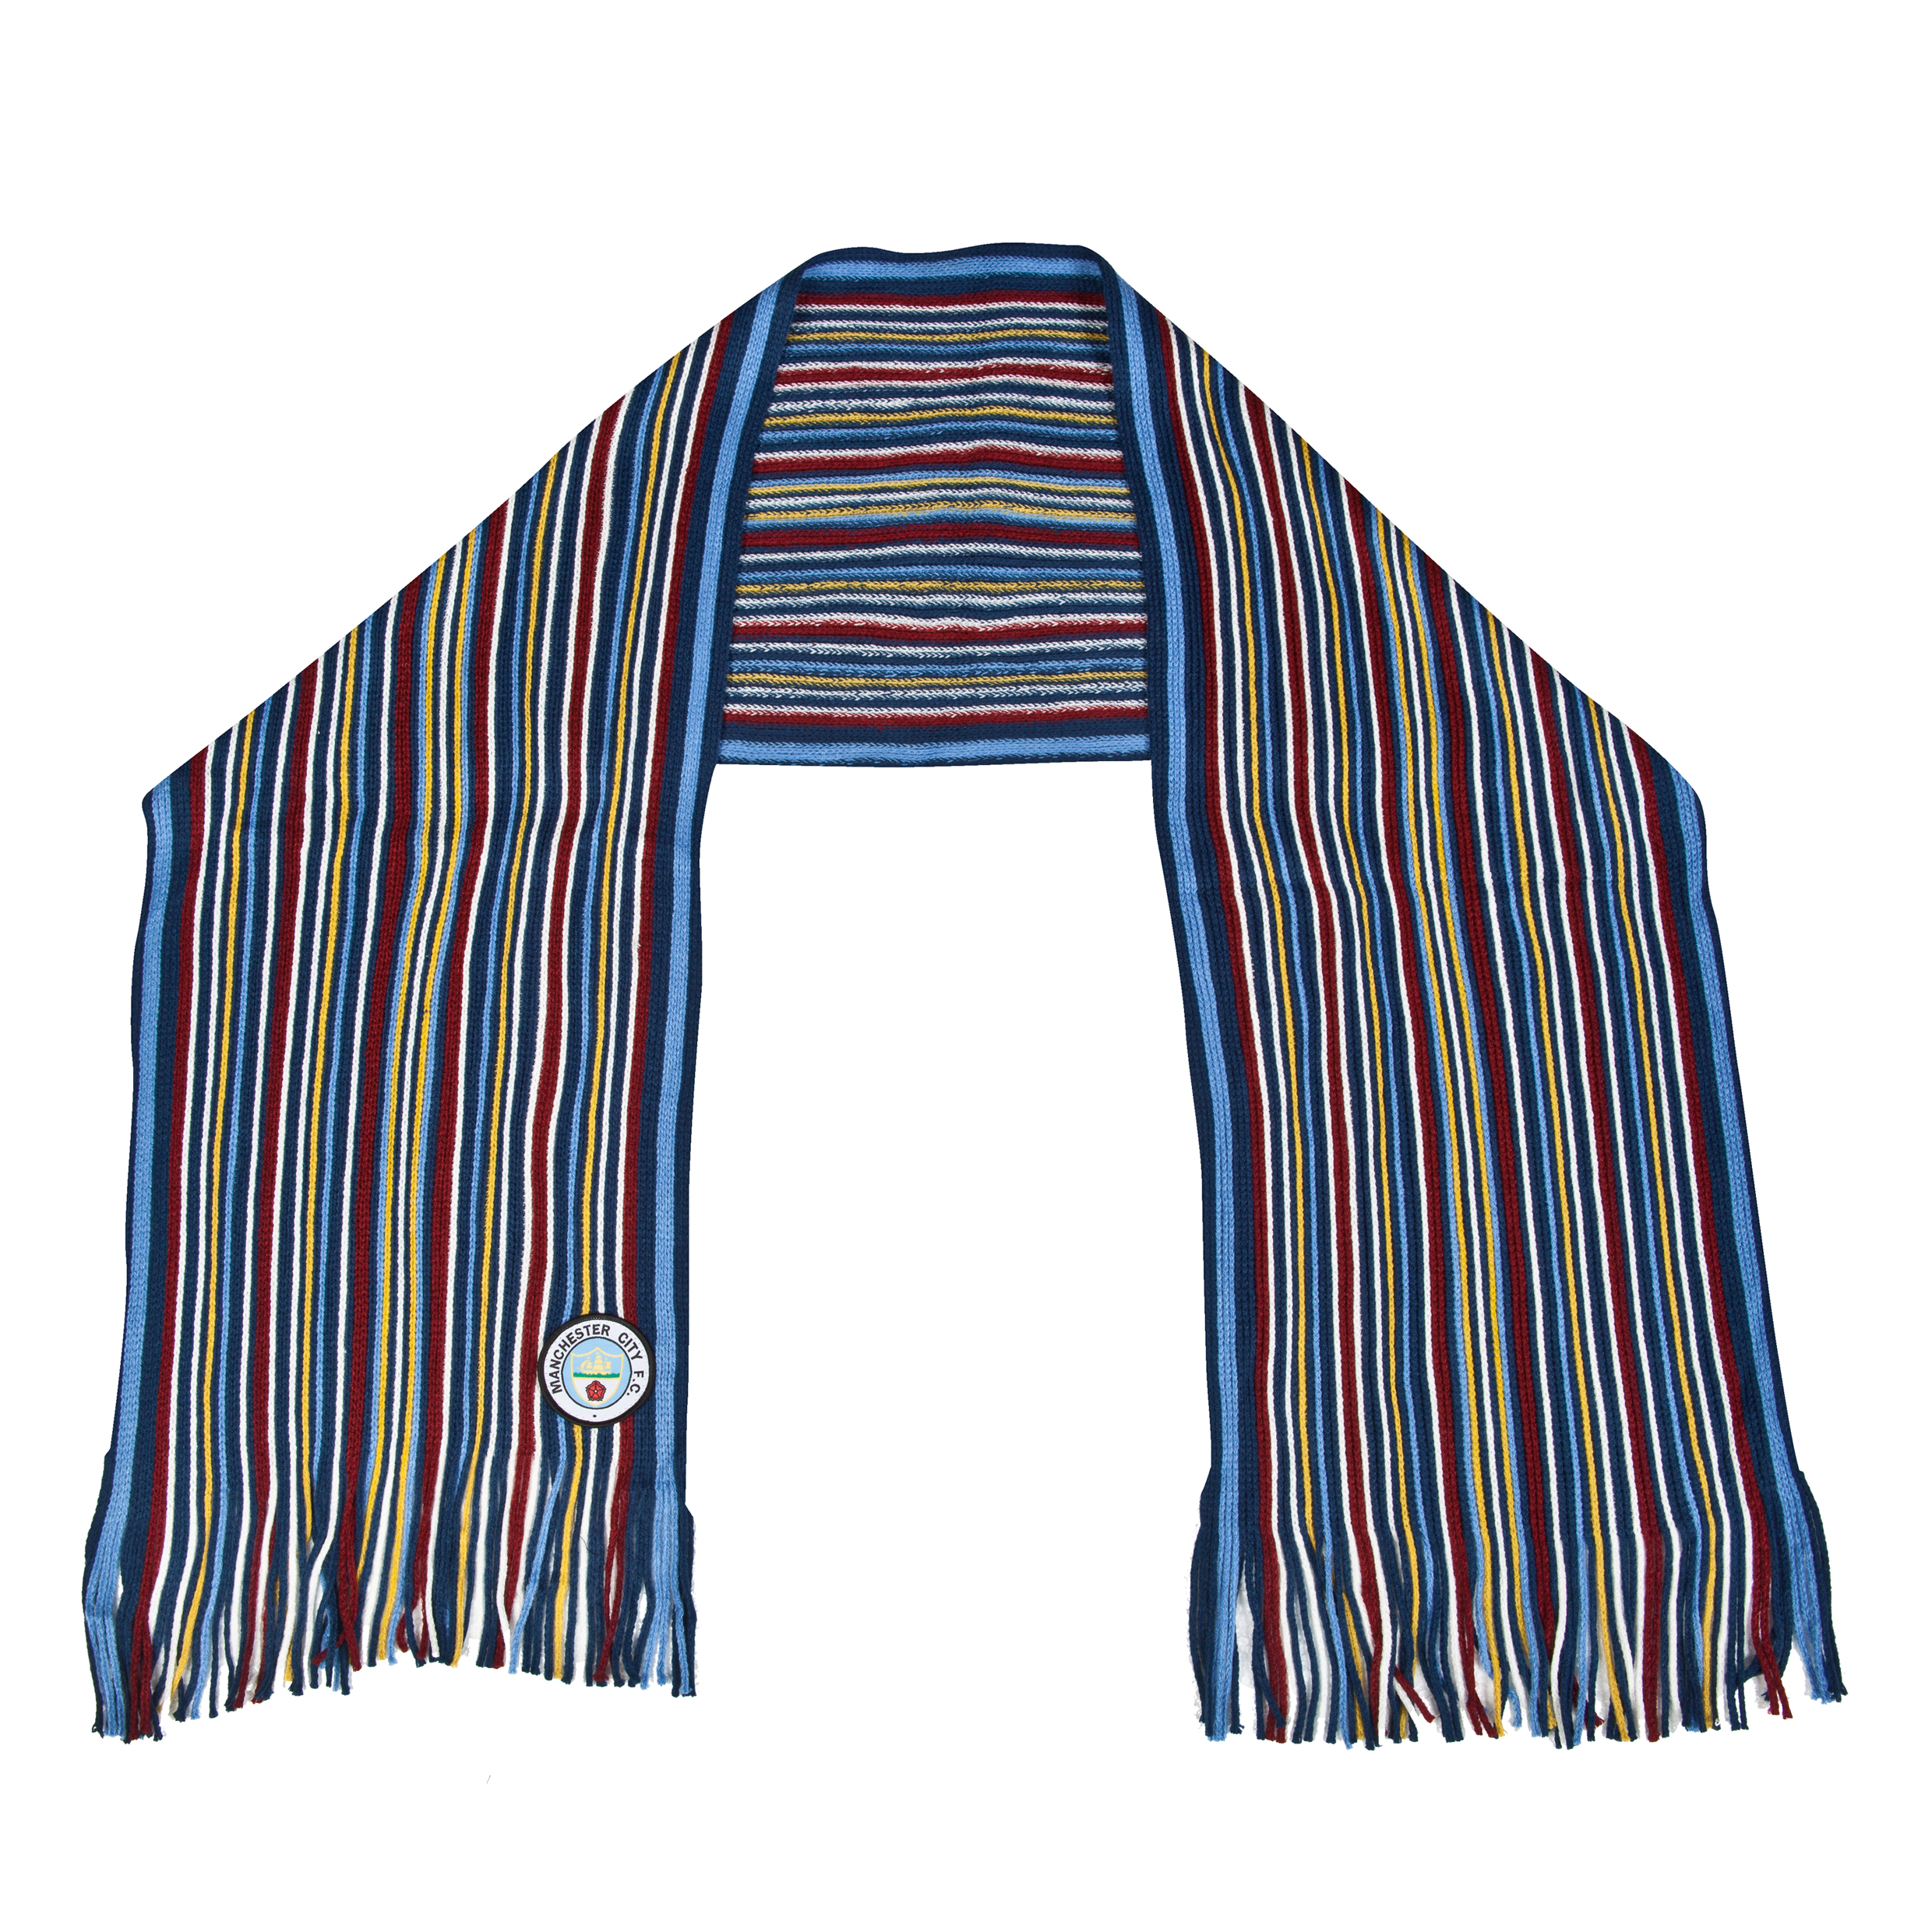 Manchester City Retro Scarf Multi